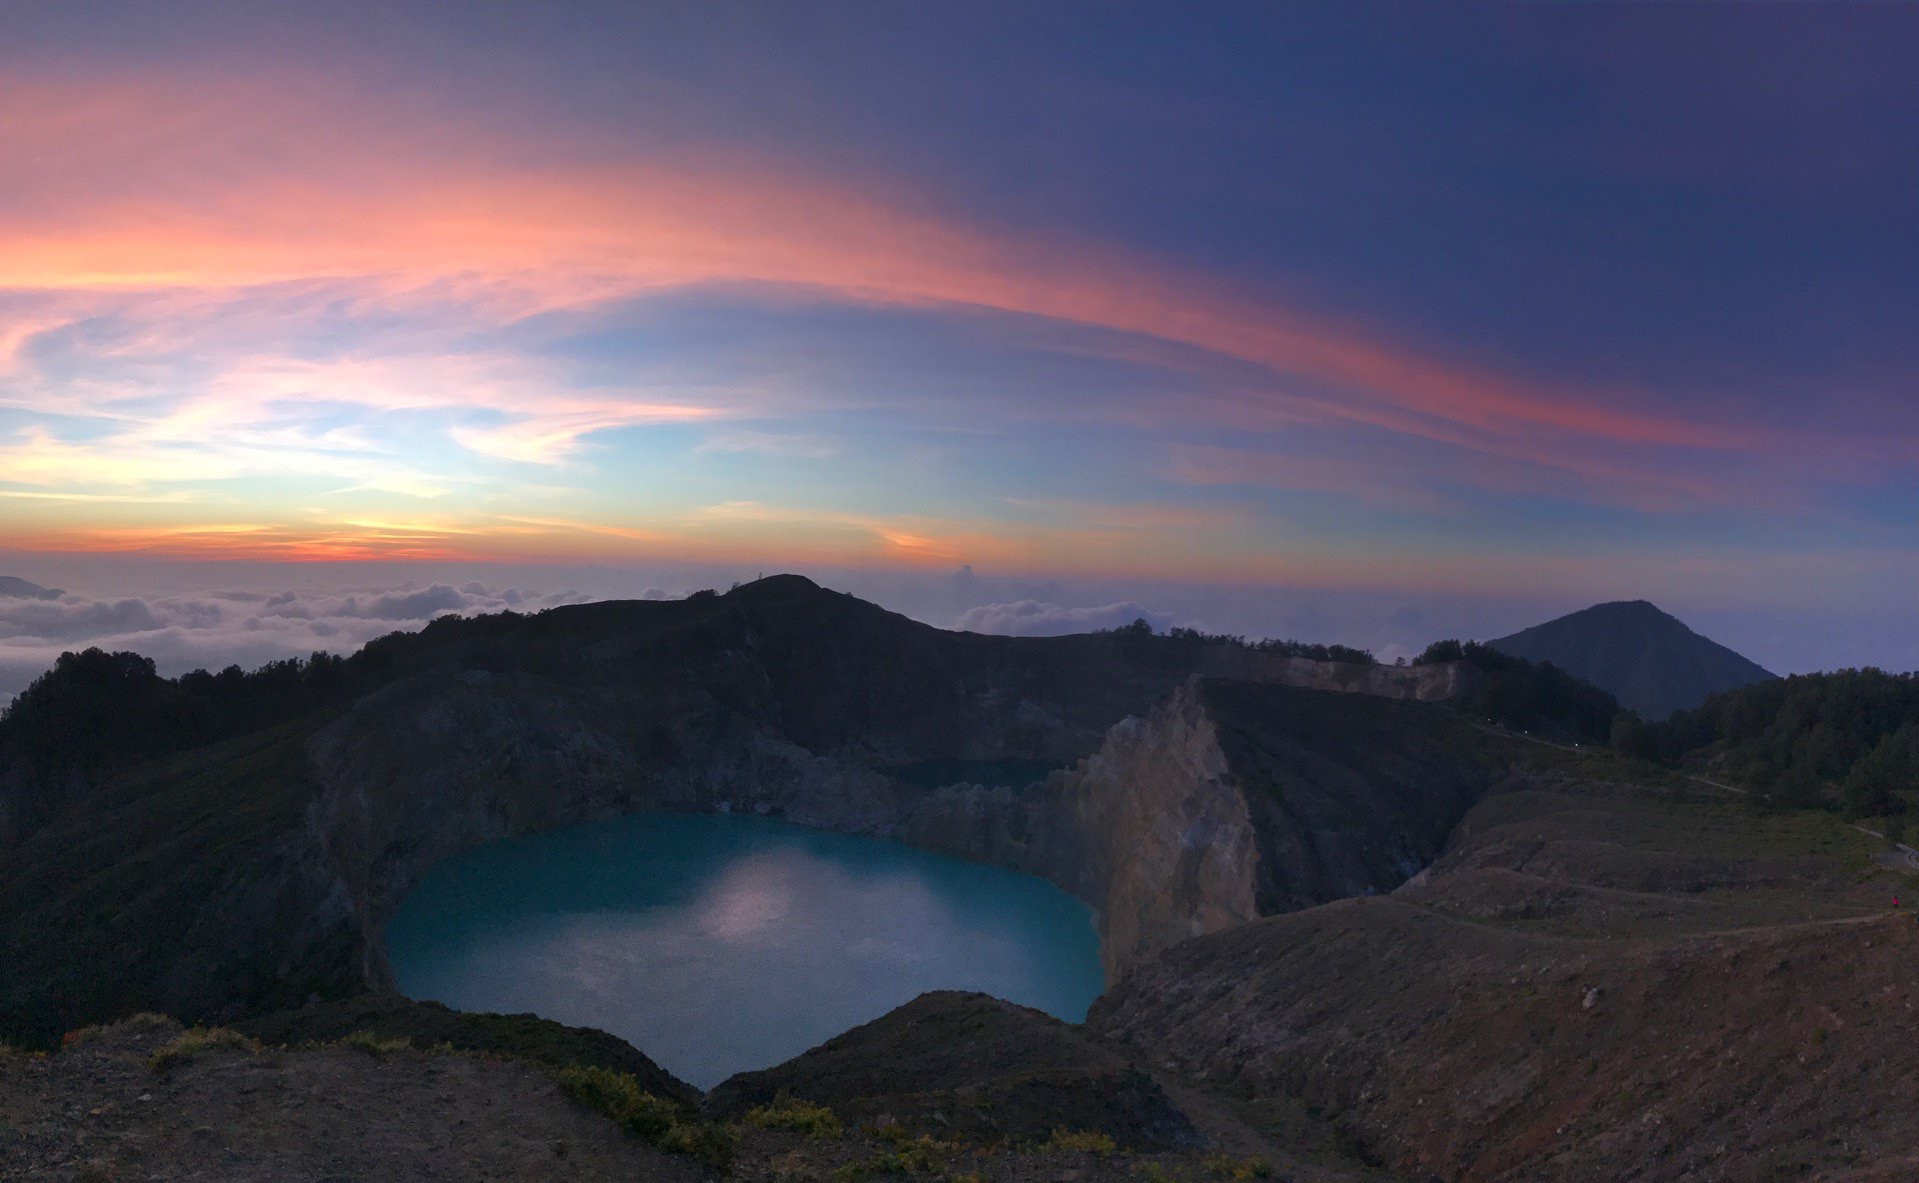 Photo of the crater lake of Tiwu Nuwa Muri Koo Fai courtesy of @PaulBromford!